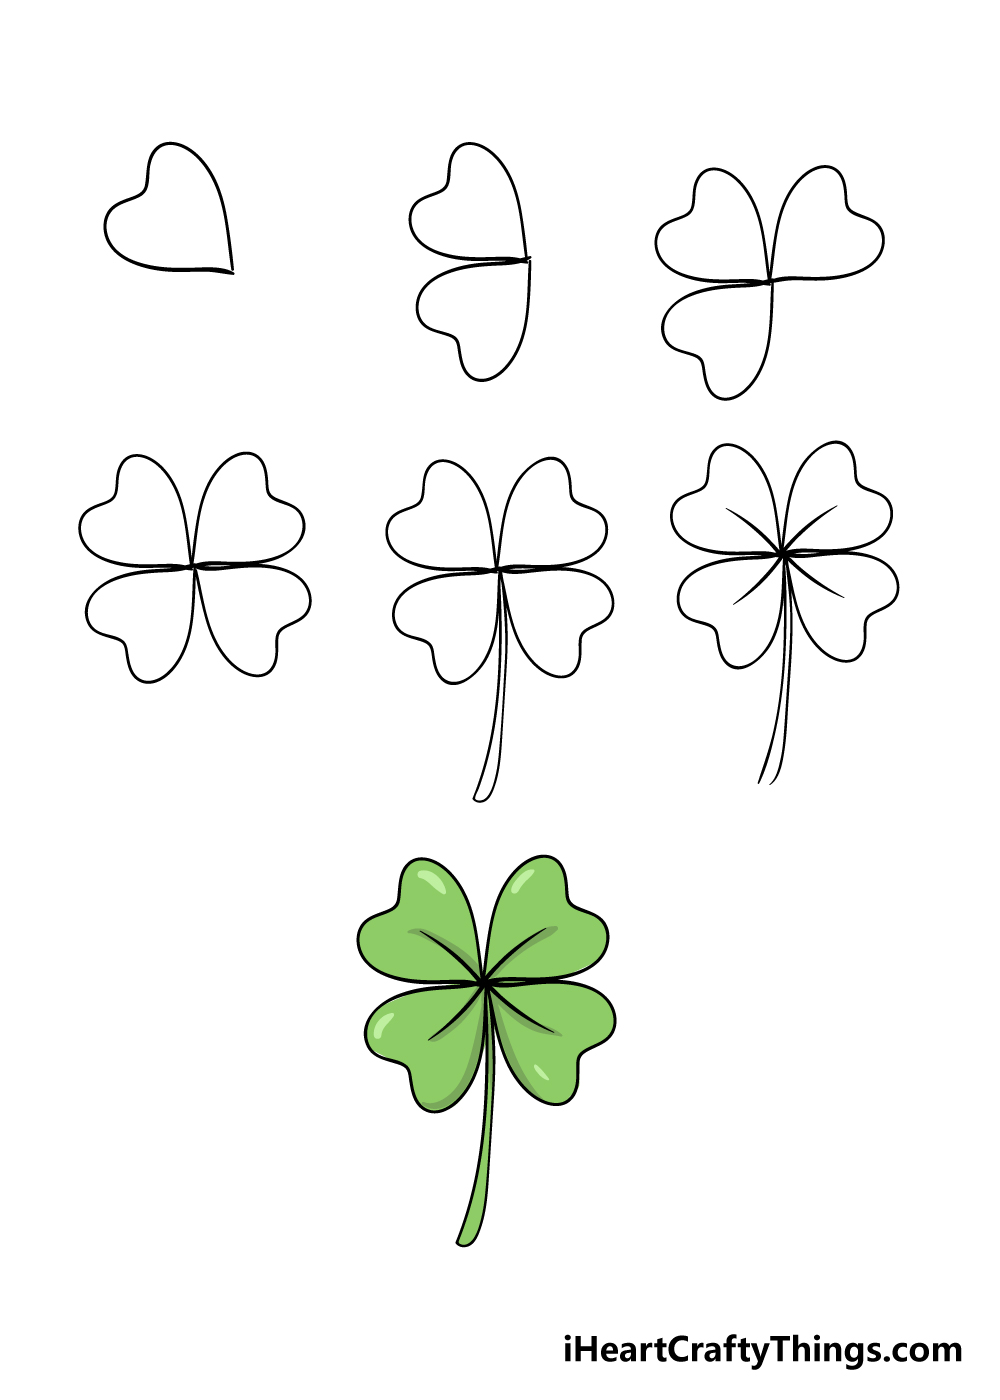 how to draw a four-leaf clover in 7 steps